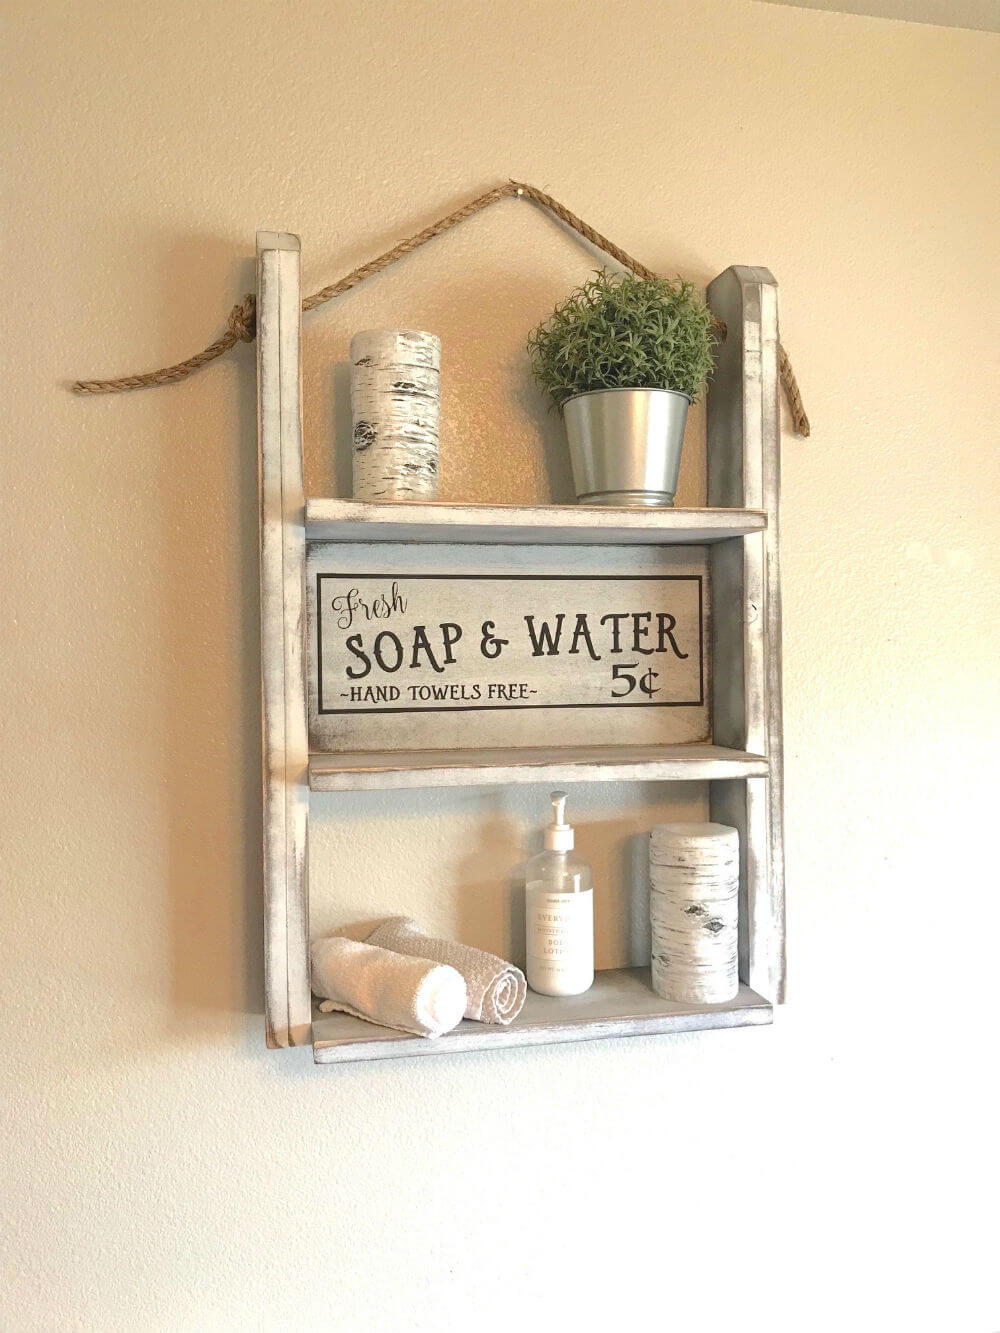 Red roan signs farmhouse bathroom shelf https://homebnc.com/best-etsy-bathroom-accessories-ideas-to-buy/